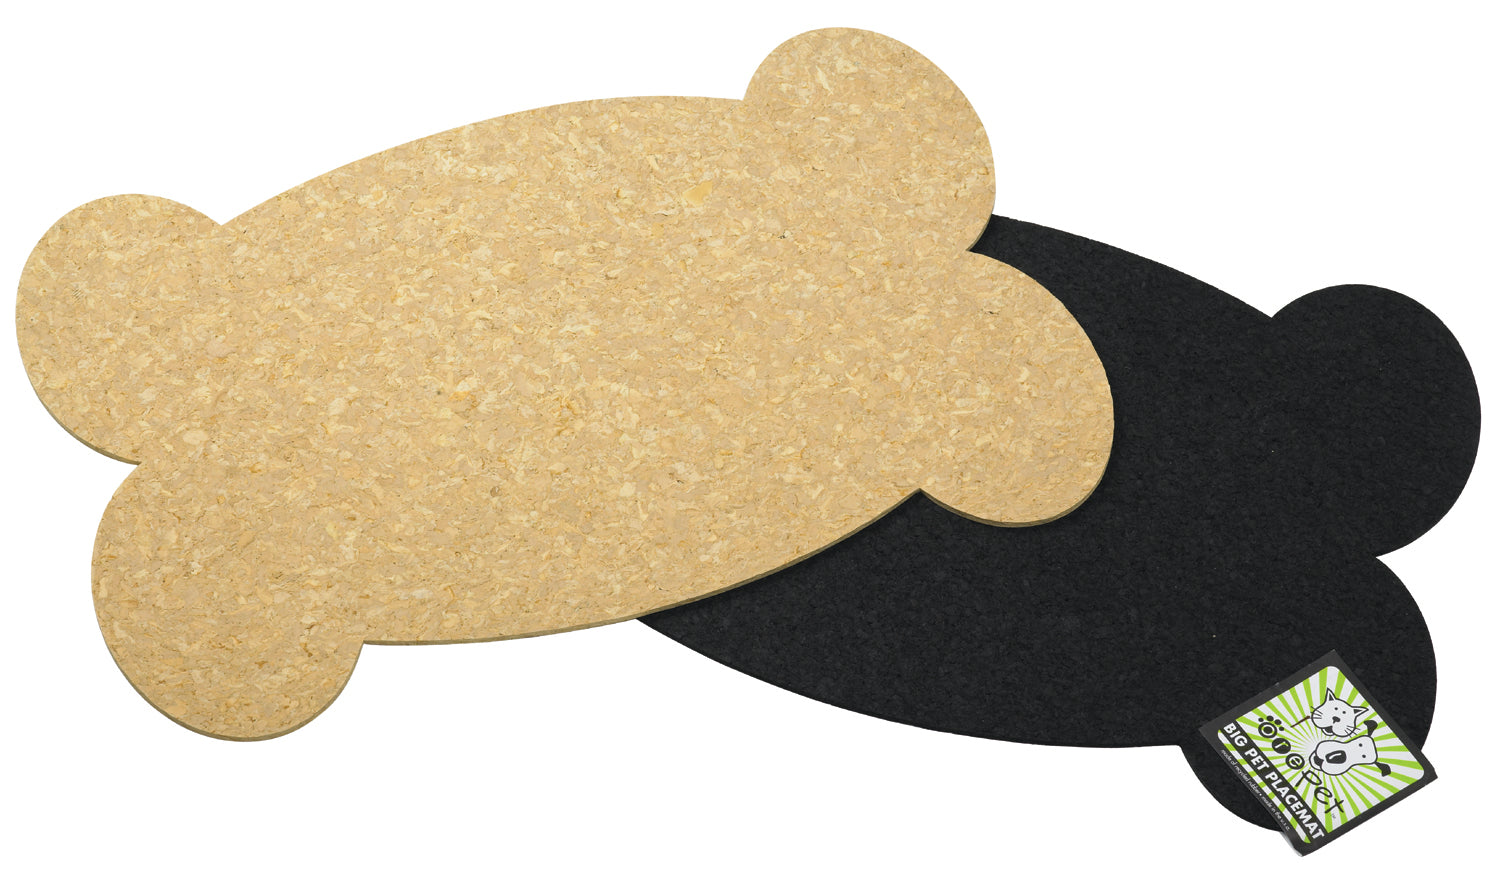 Placemat Jumbo - Cork Bone - Dog Placemat - 2 Color Options